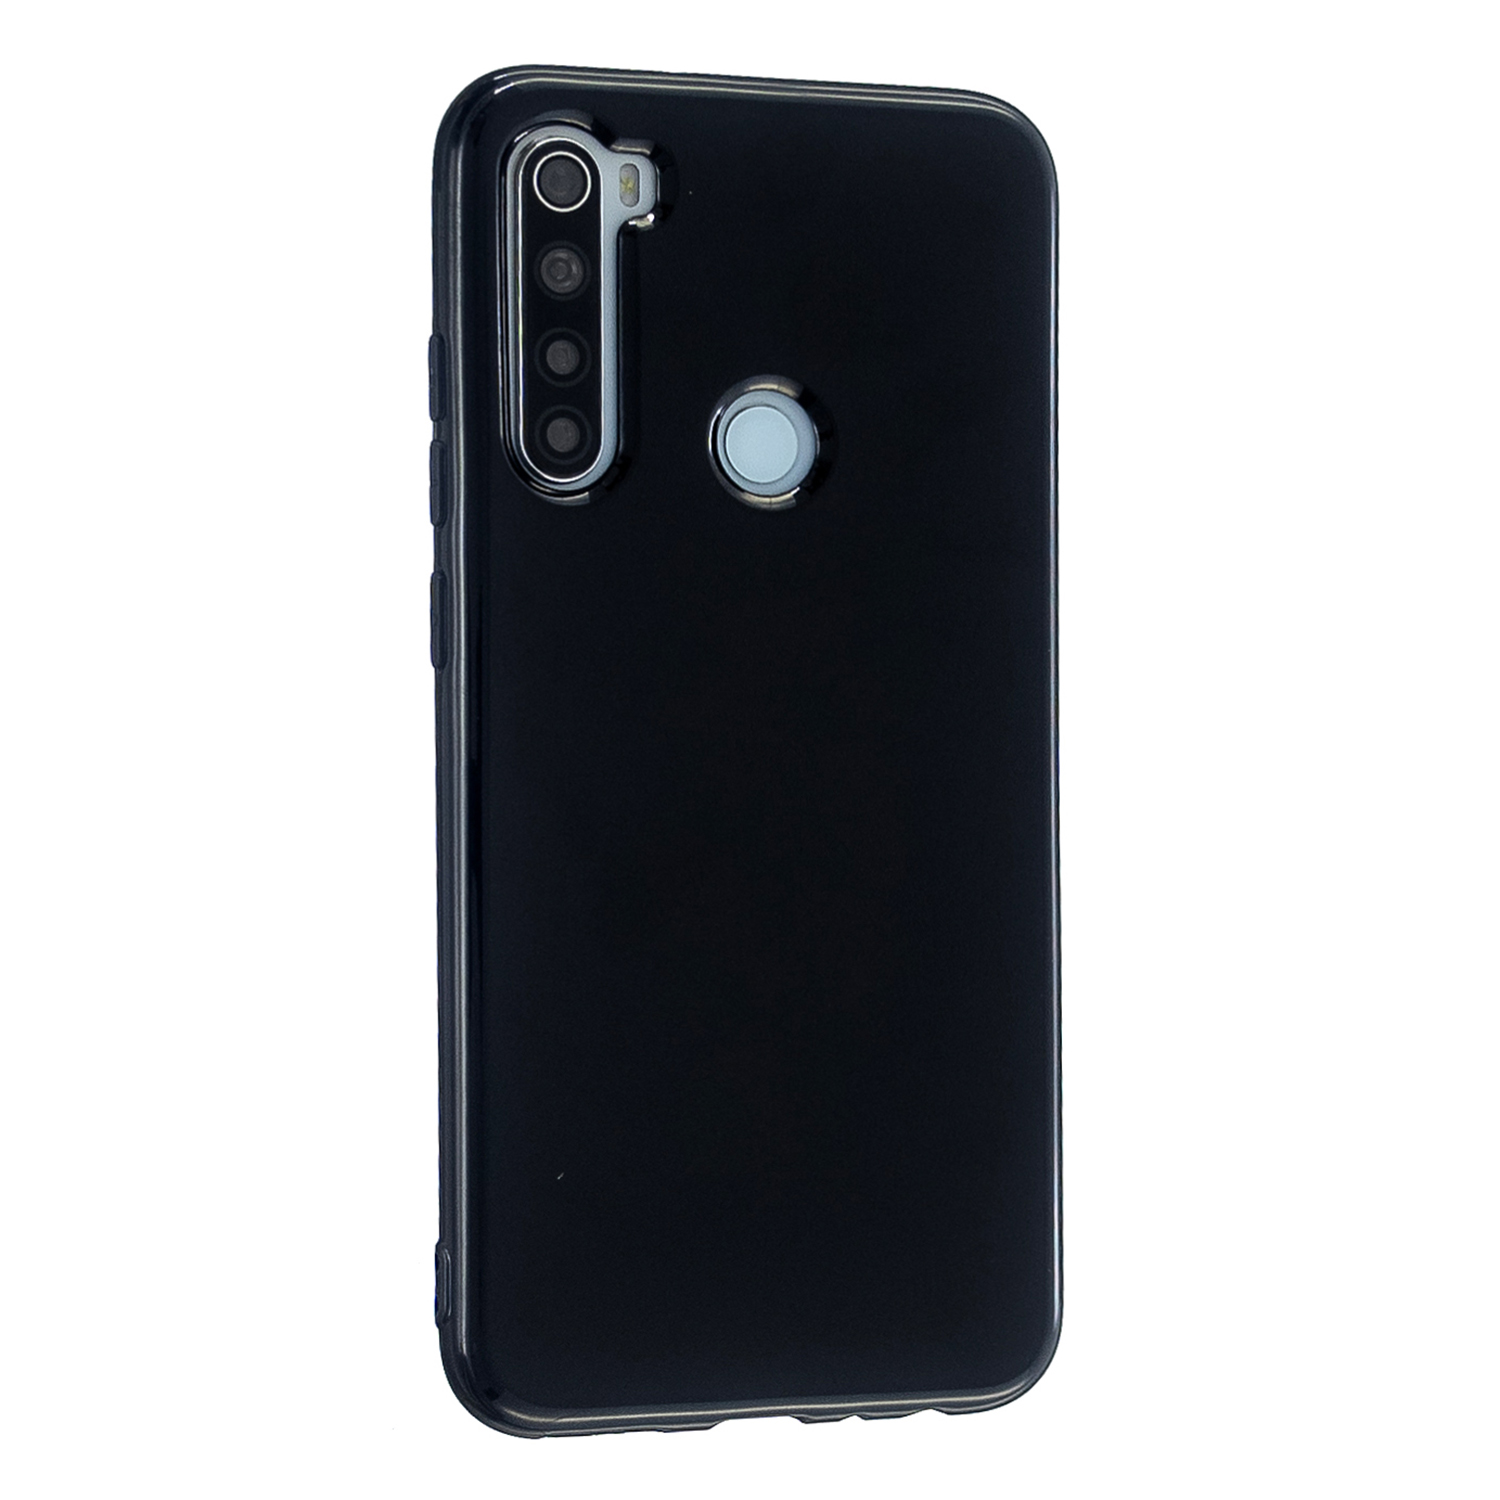 For Redmi Note 8/8 Pro Cellphone Cover 2.0mm Thickened TPU Case Camera Protector Anti-Scratch Soft Phone Shell Black